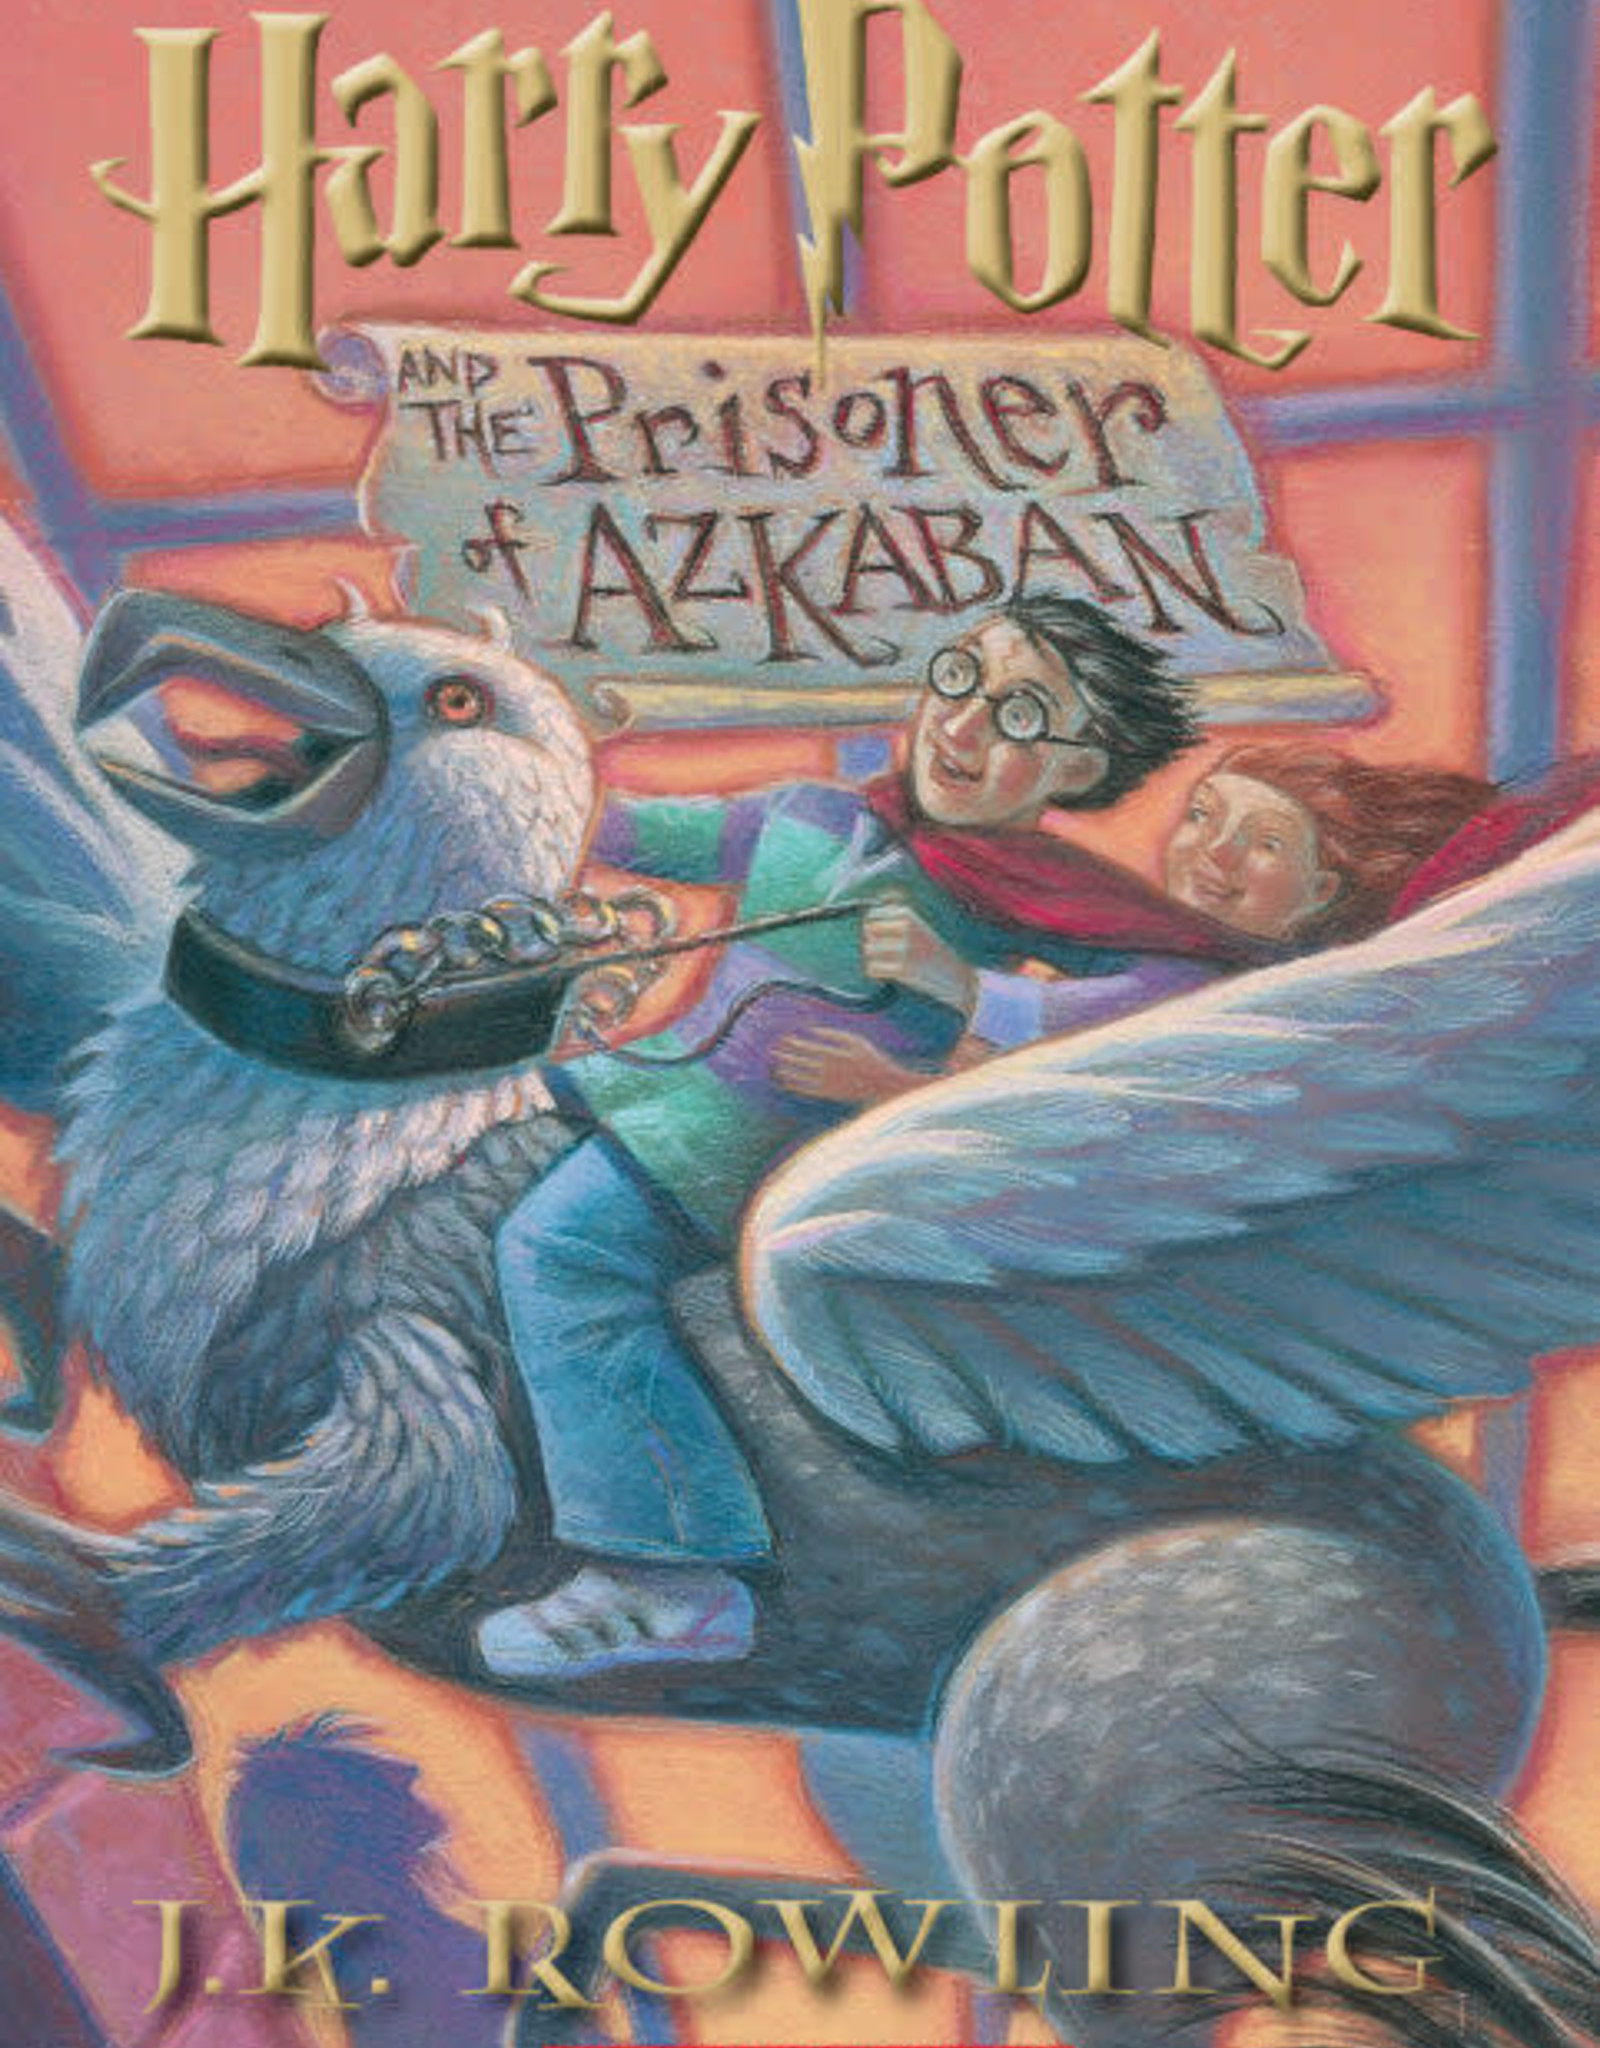 Scholastic Harry Potter and the Prisoner of Azkaban